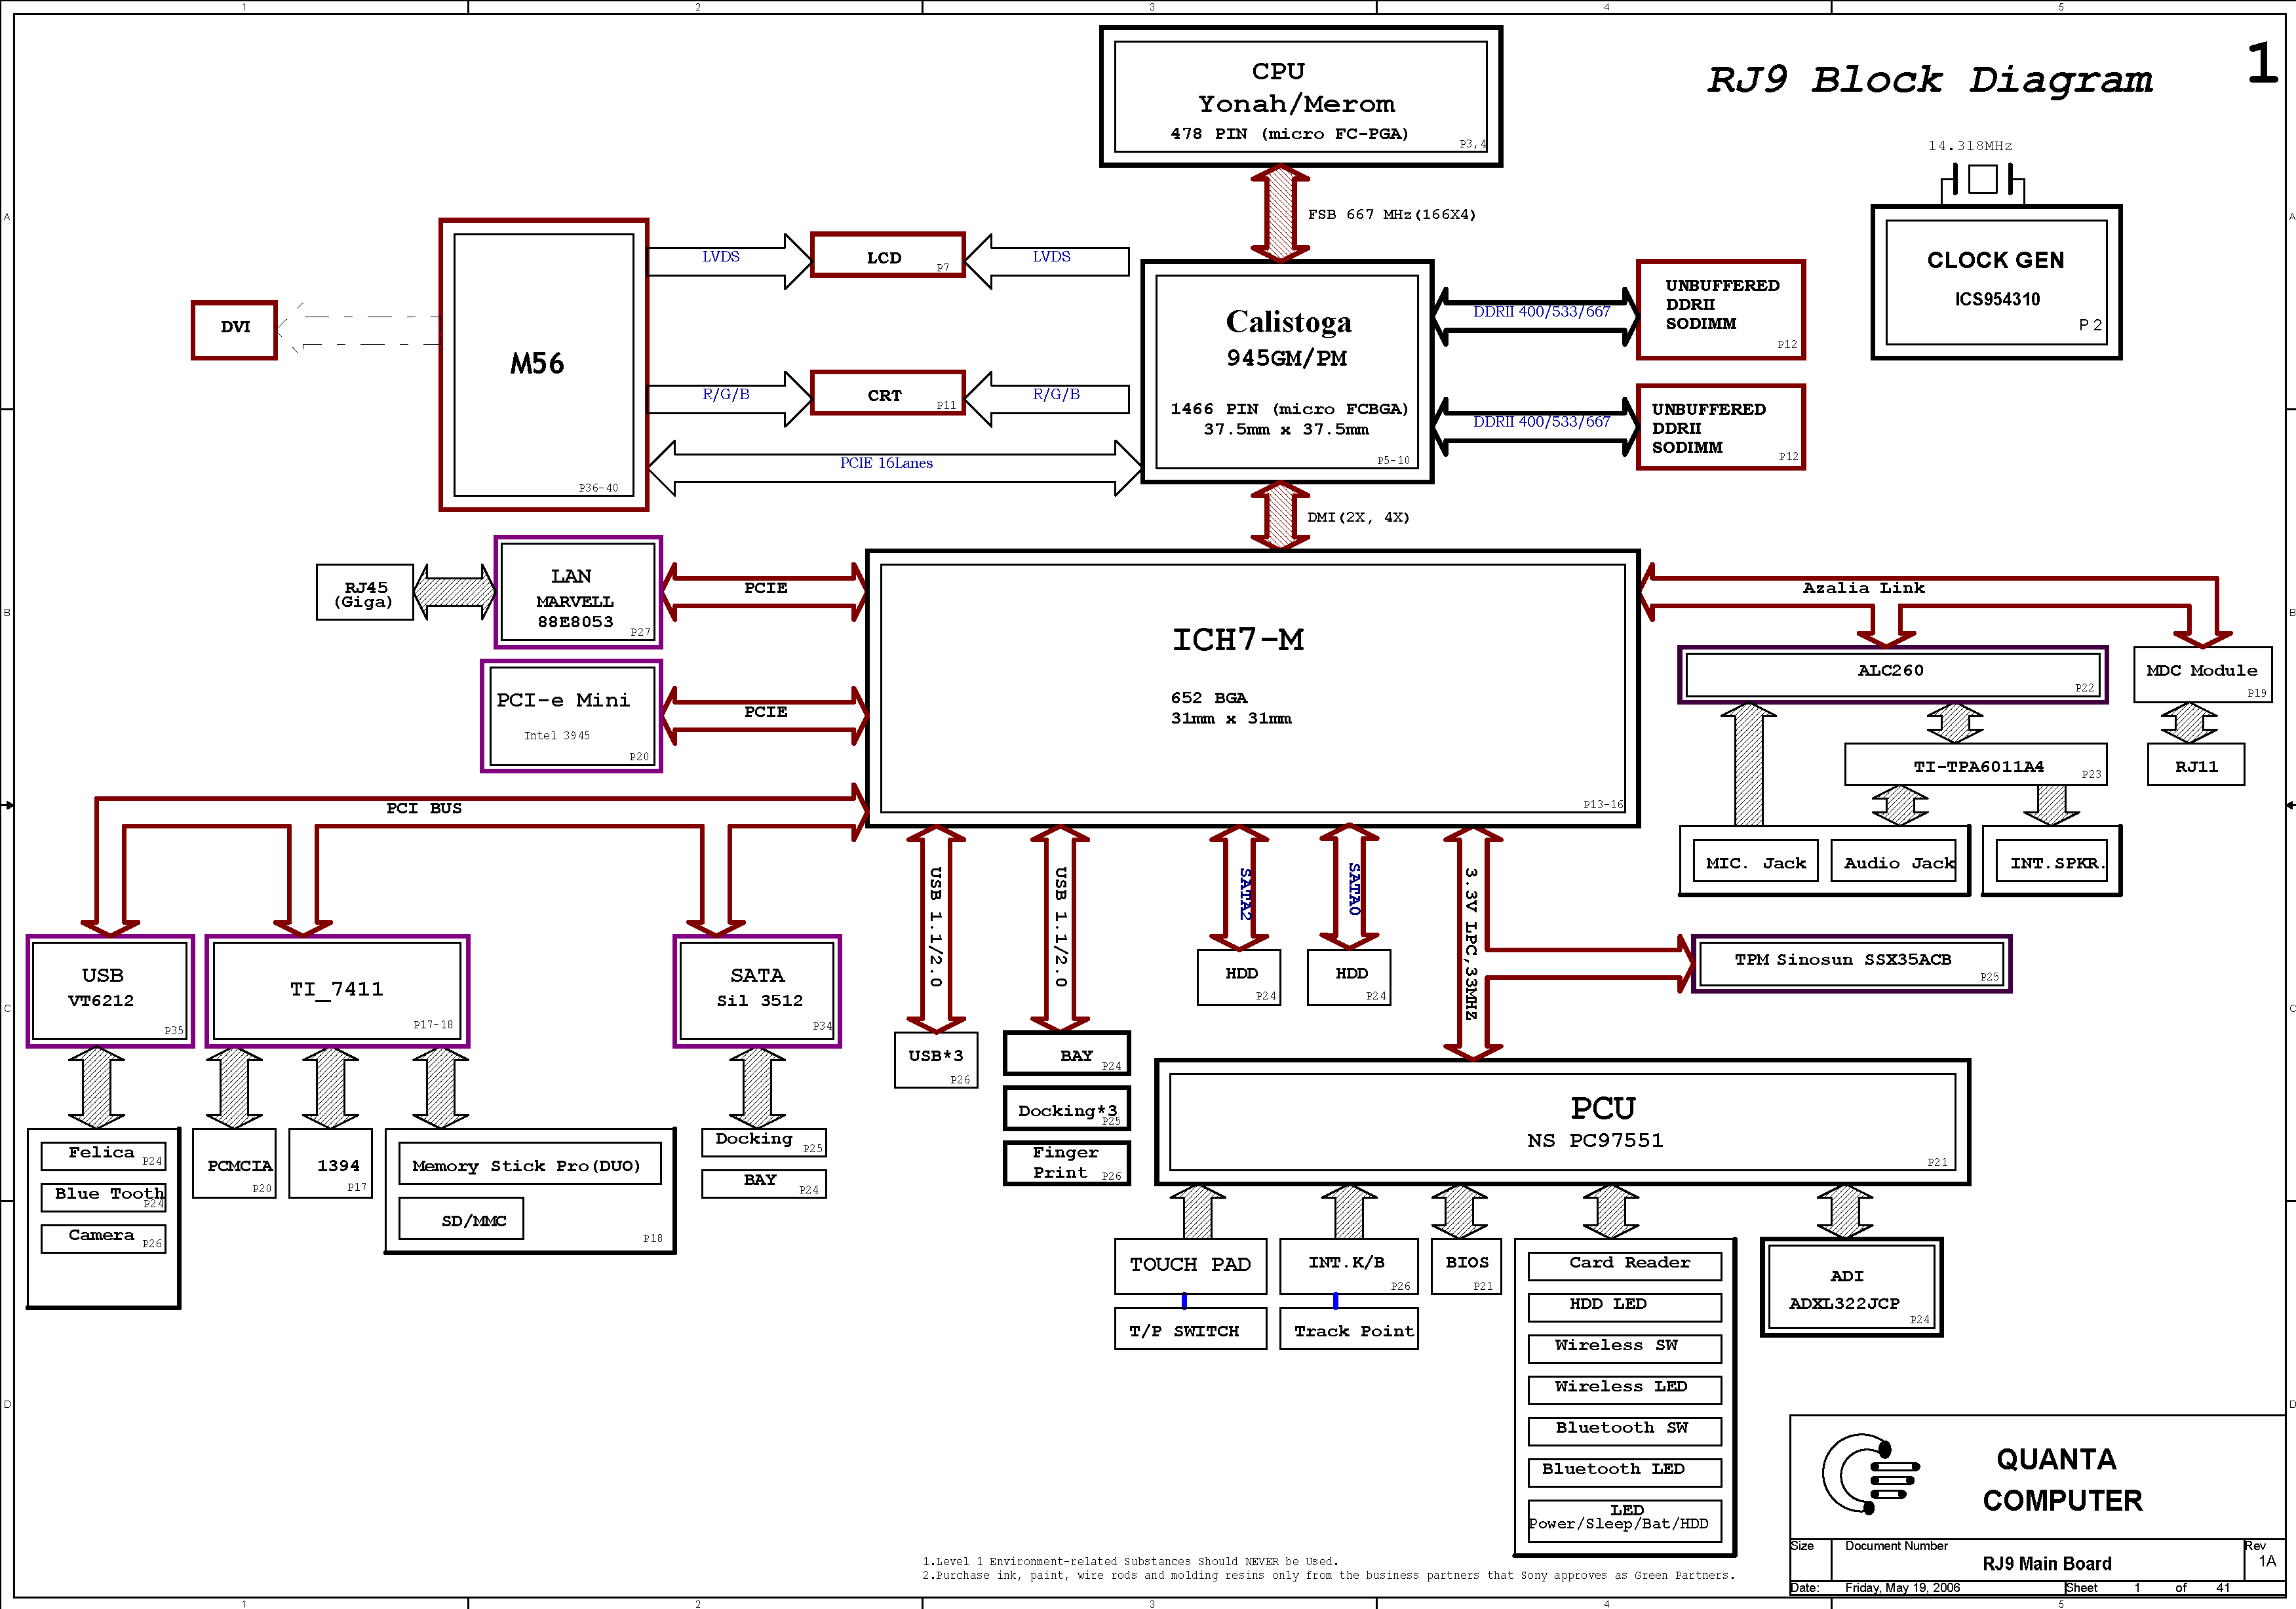 sony vaio rj9 schematics block diagram free schematic diagram rh datasheetgadget wordpress com block diagram freeware block diagram free tool